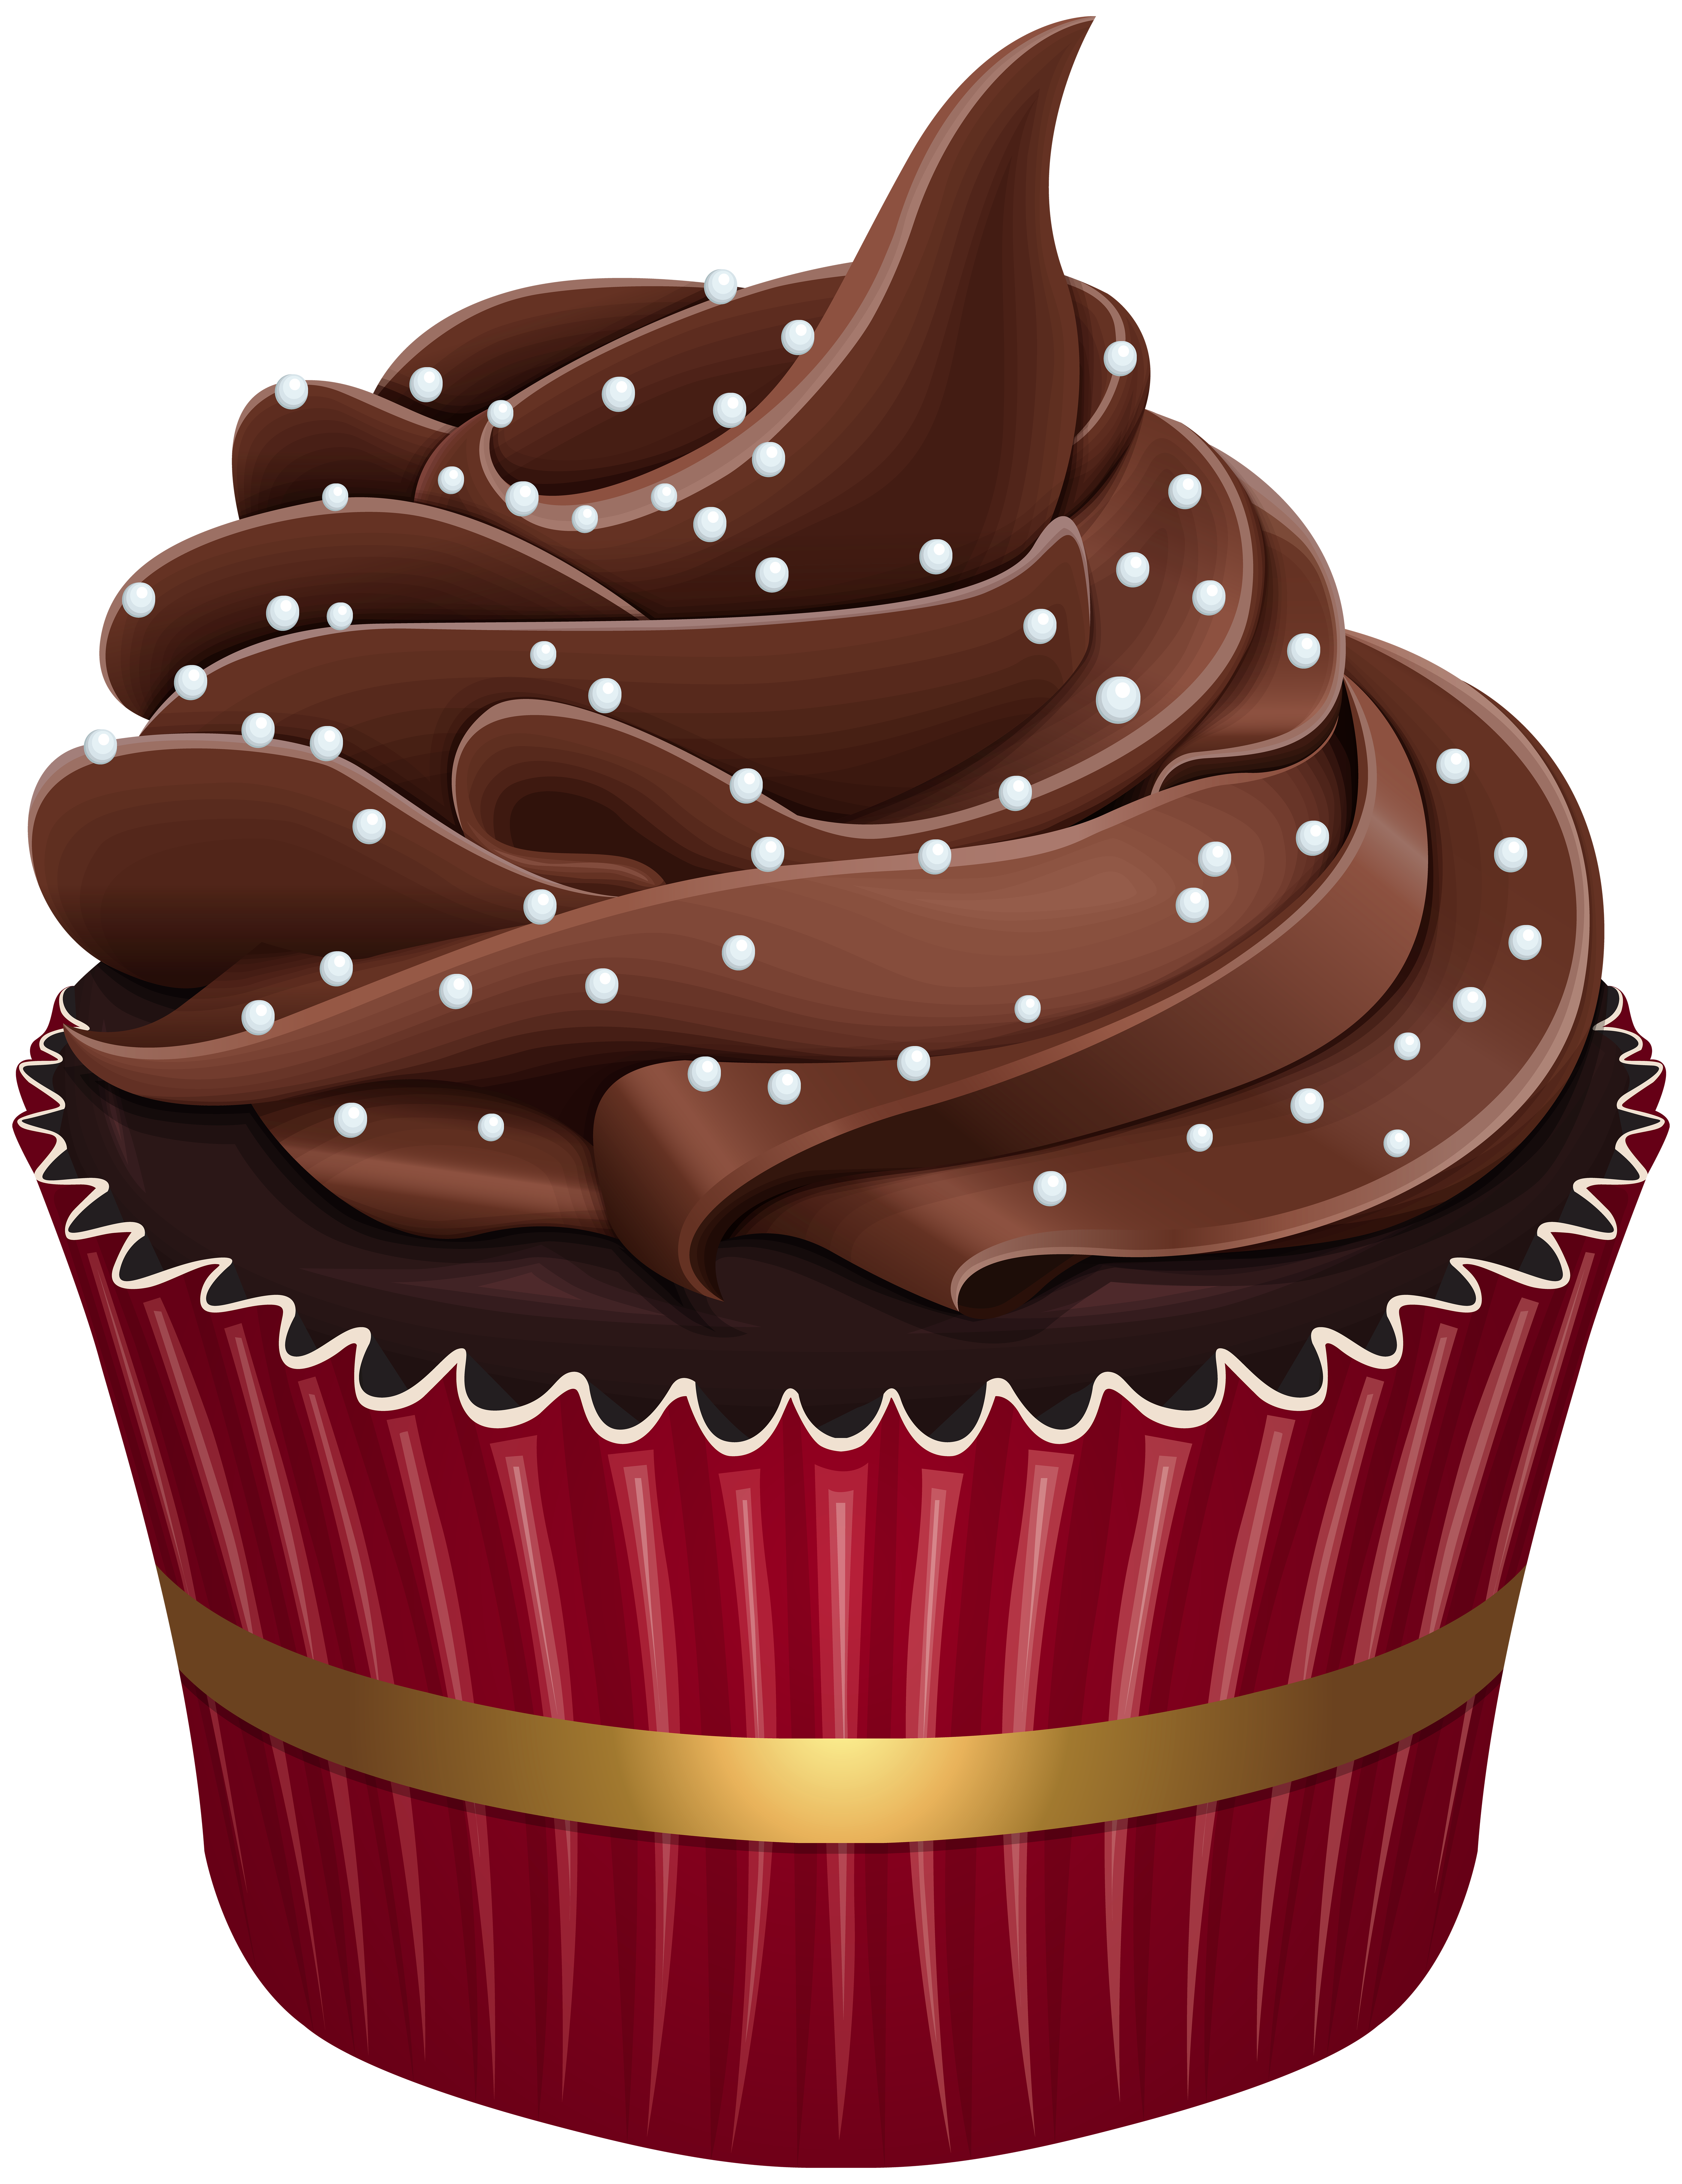 Cup cake png. Cupcake clip art gallery